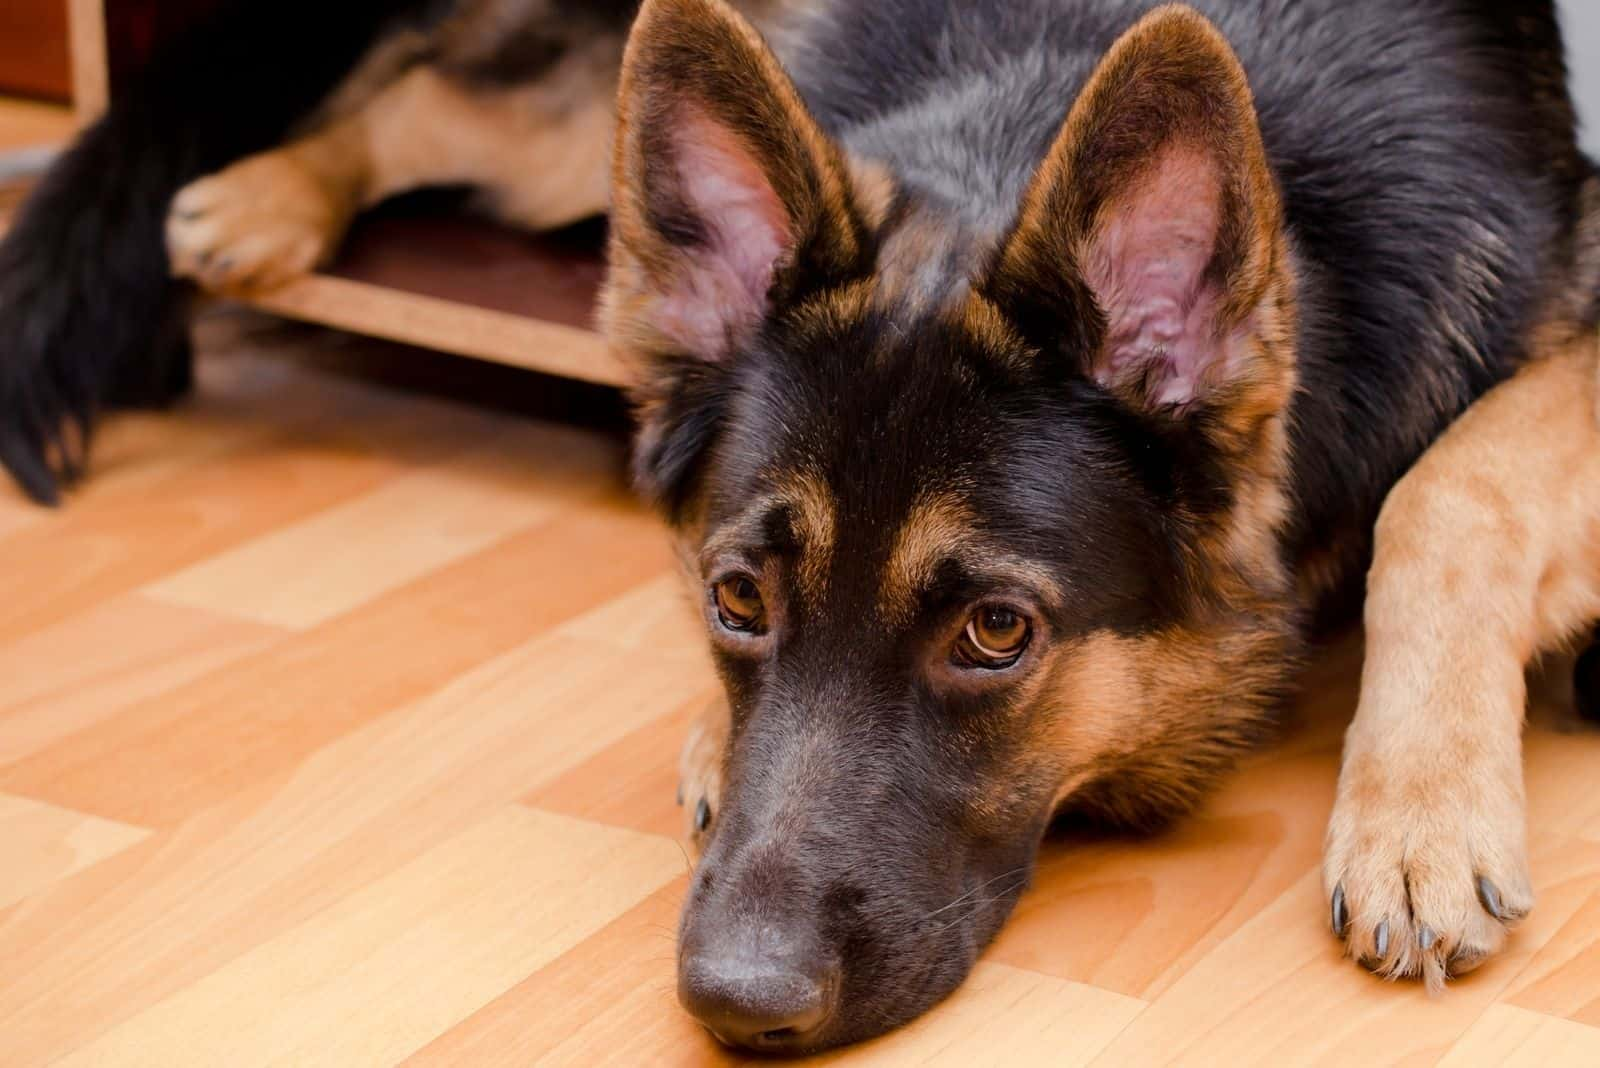 Funny sad German shepherd in a nightstand (using it as a crate)